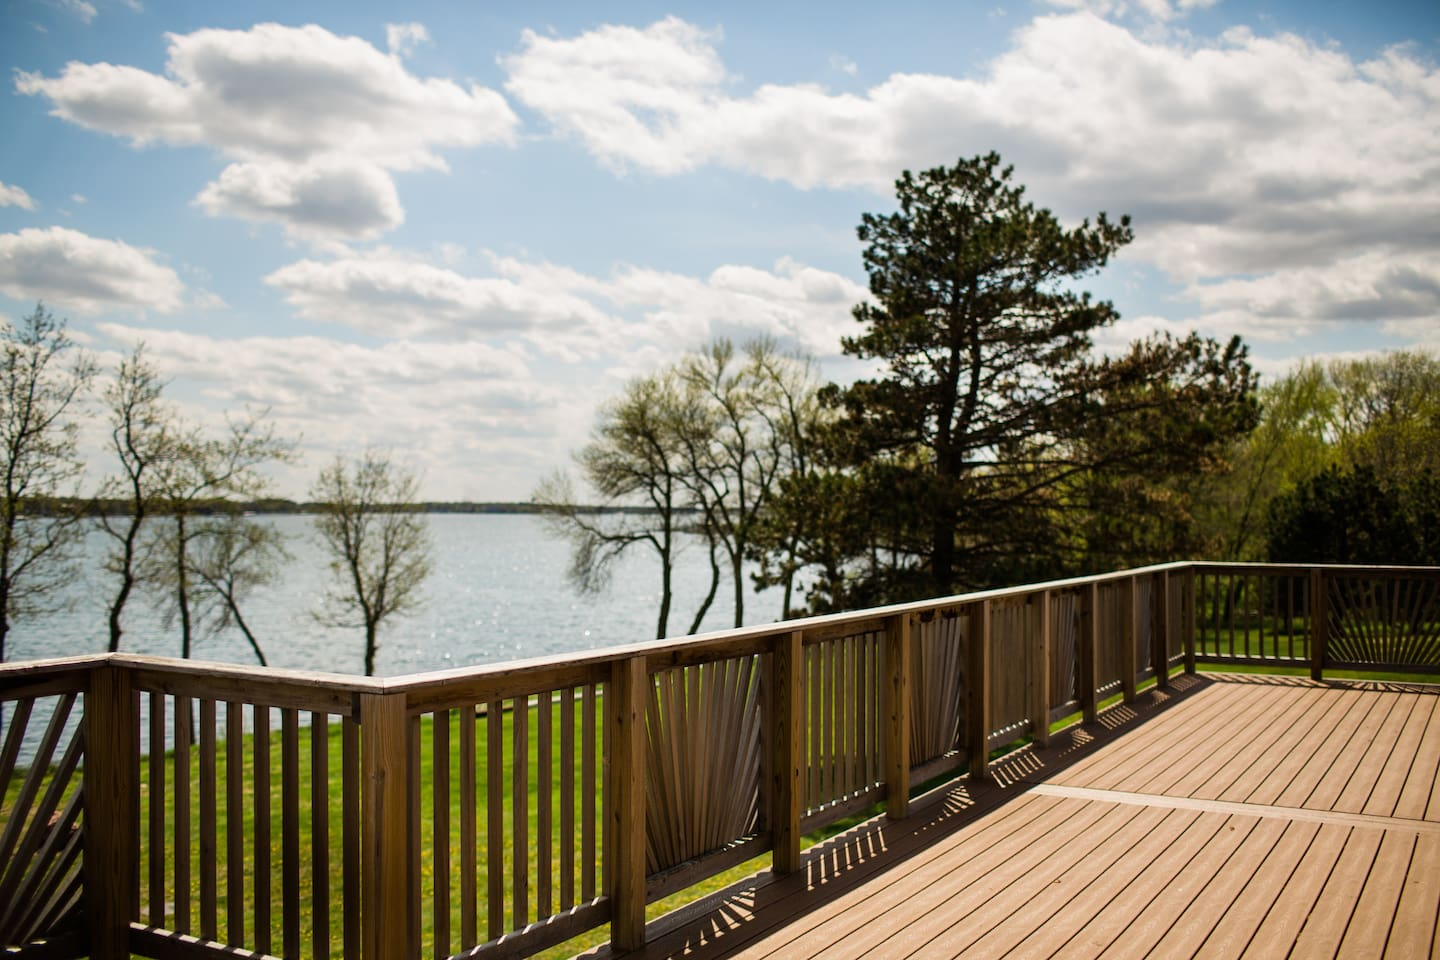 Deck and Patio with fire pit, chairs, picnic tables, and lake views.